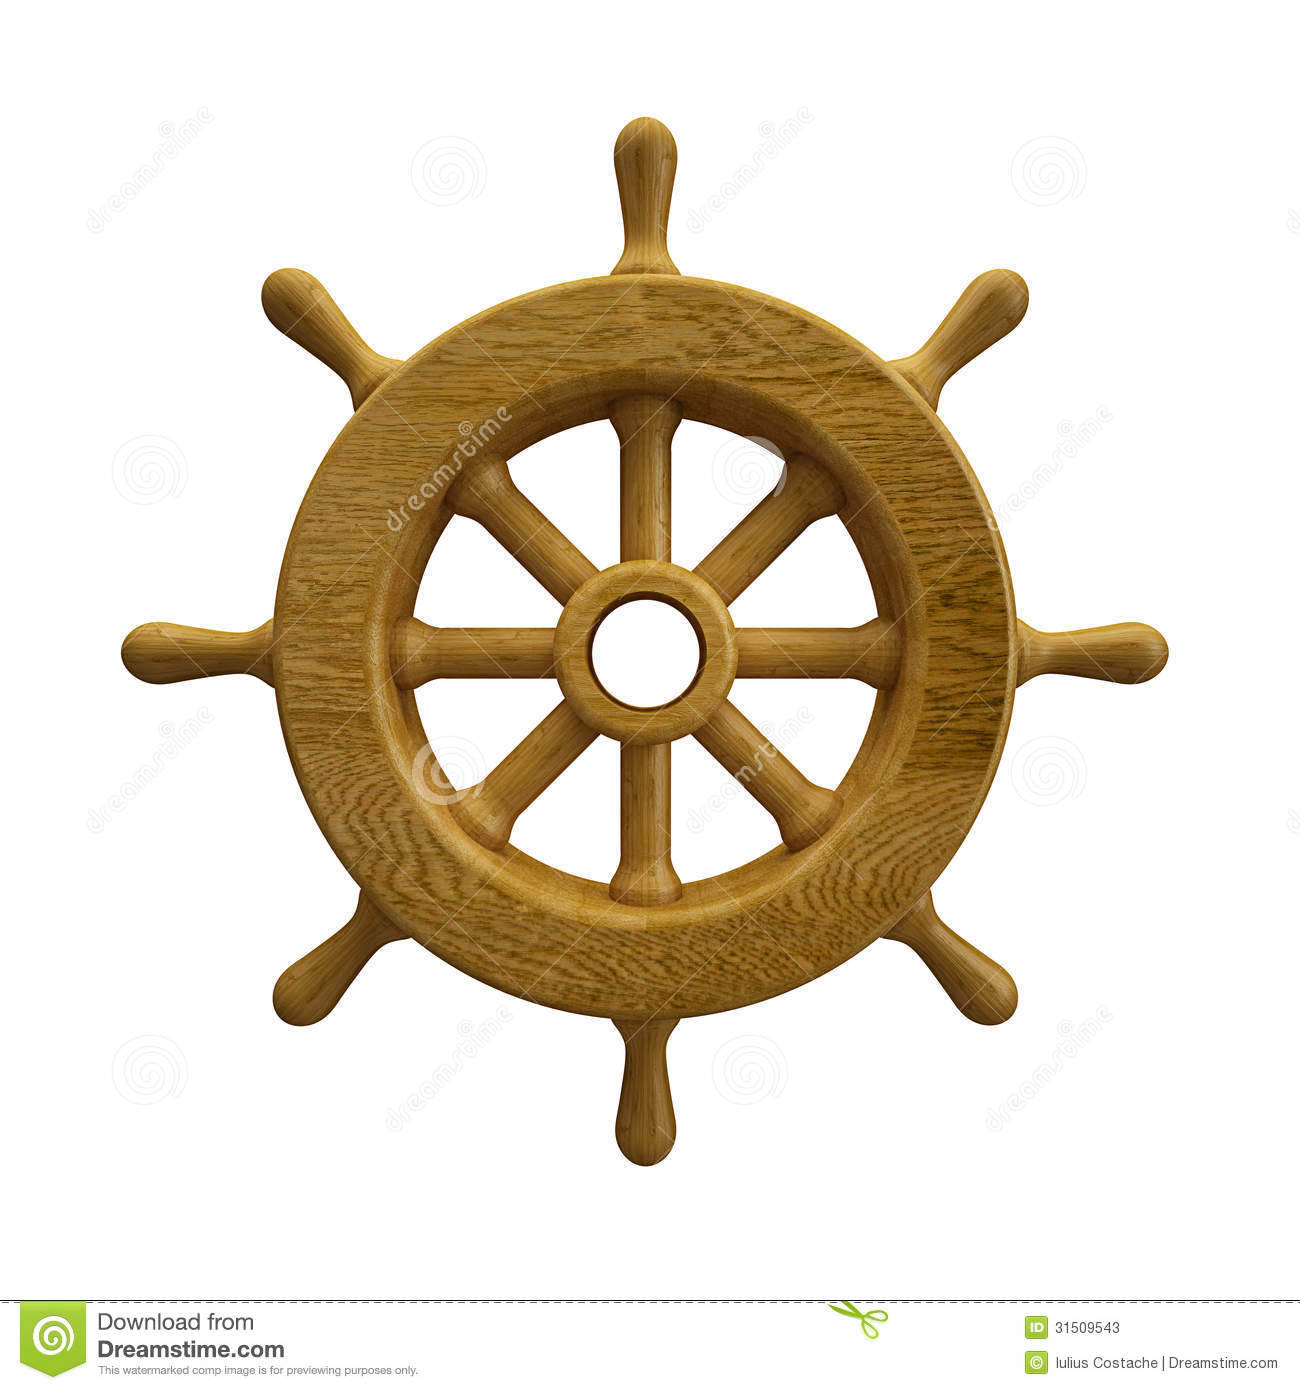 clipart ship steering wheel - photo #22